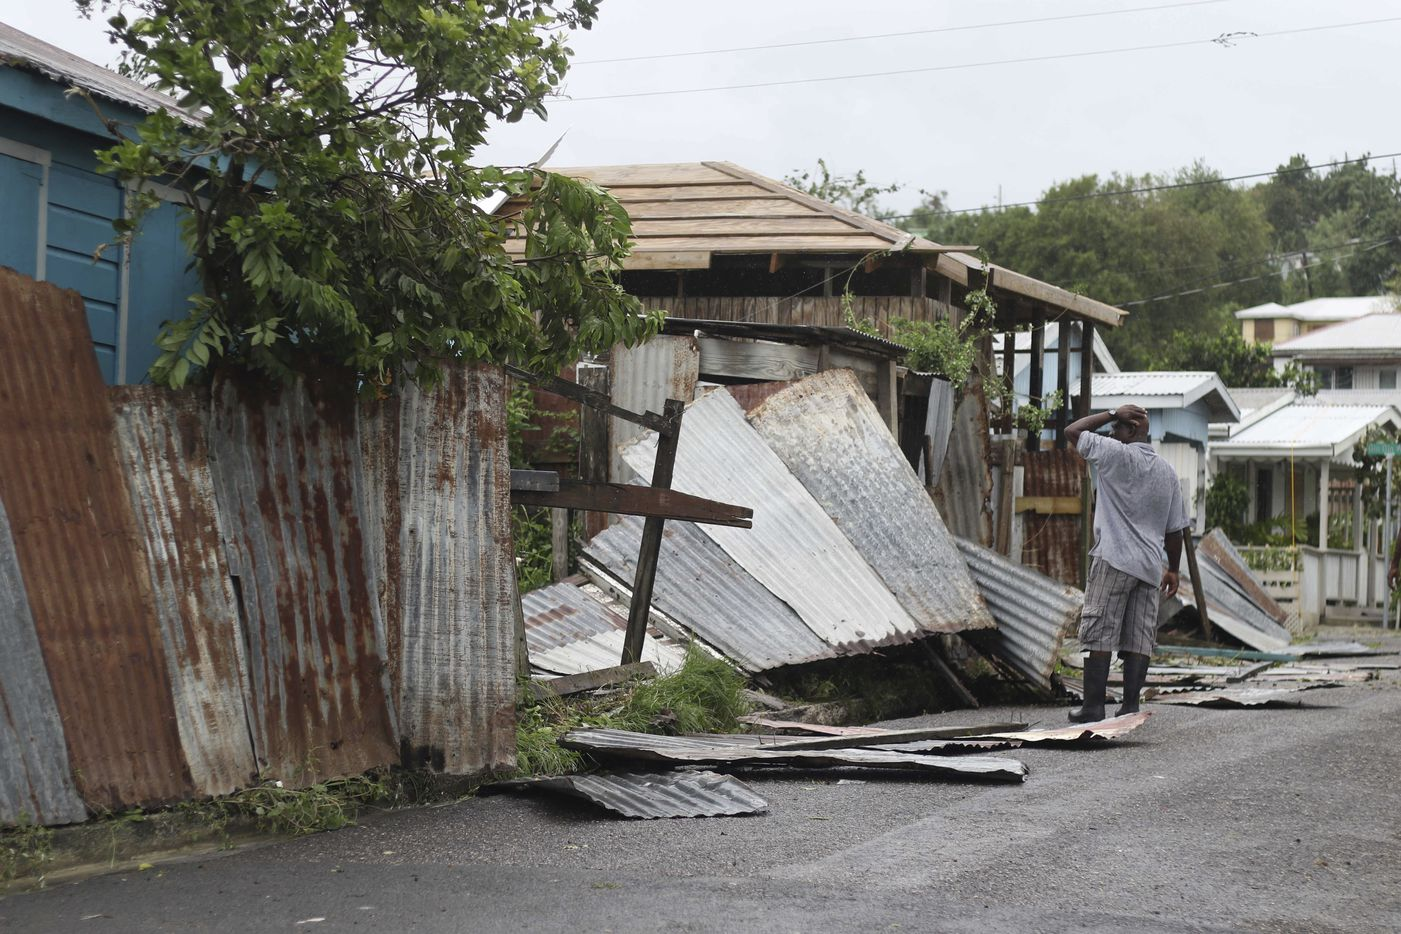 A man surveys the wreckage on his property after the passing of Hurricane Irma, in St. John's, Antigua and Barbuda, on Wednesday.